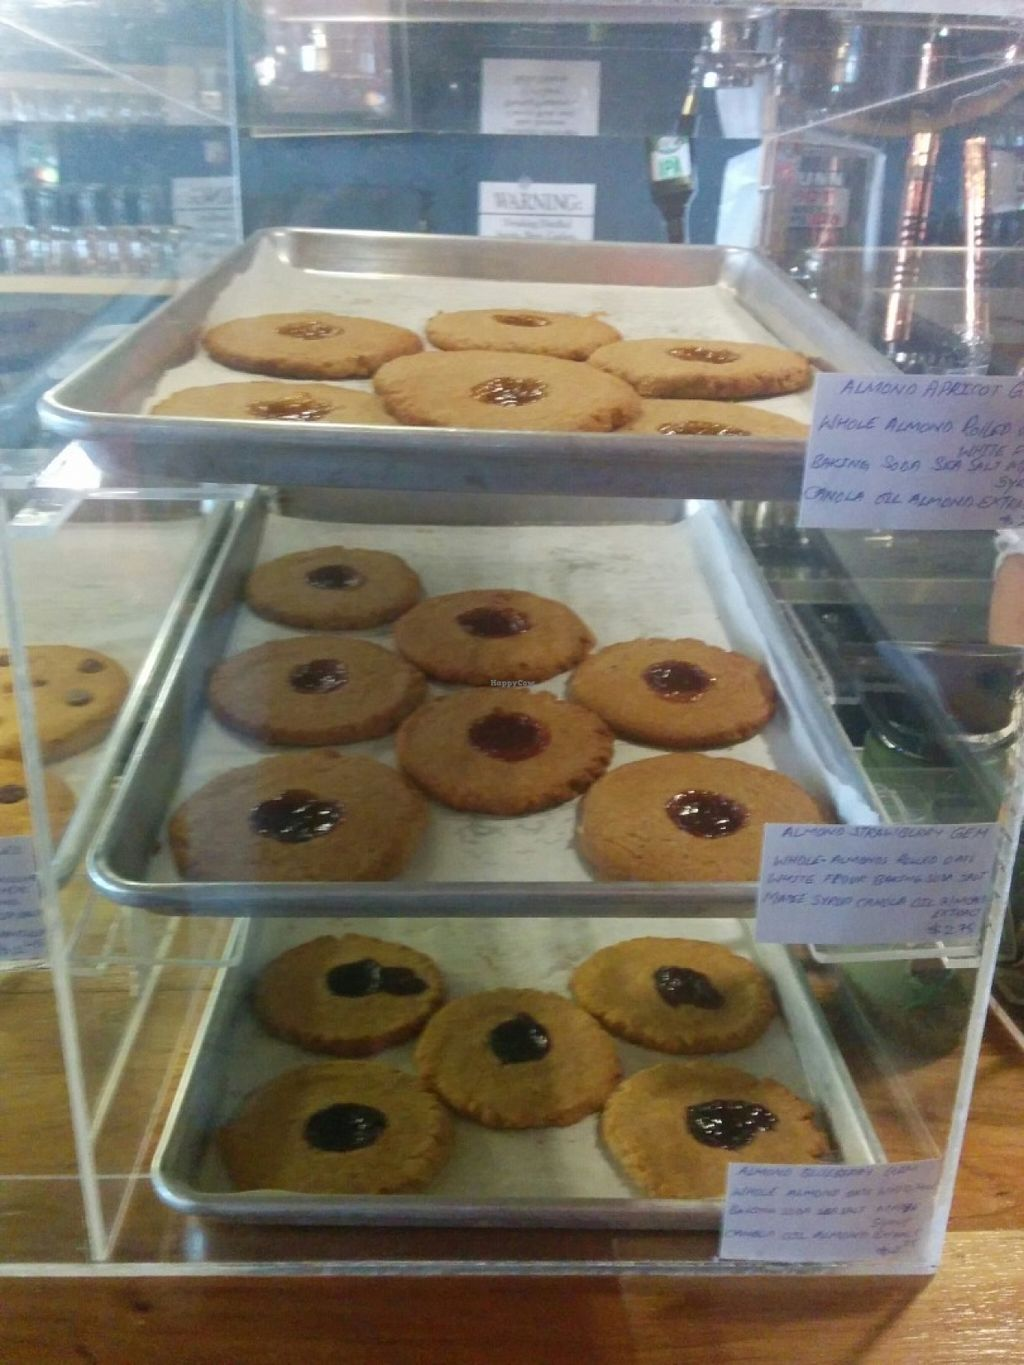 """Photo of Shangri-La Vegan - Telegraph  by <a href=""""/members/profile/MizzB"""">MizzB</a> <br/>Cookie dessert case, almond apricot, almond strawberry, almond blueberry <br/> June 10, 2016  - <a href='/contact/abuse/image/74865/153229'>Report</a>"""